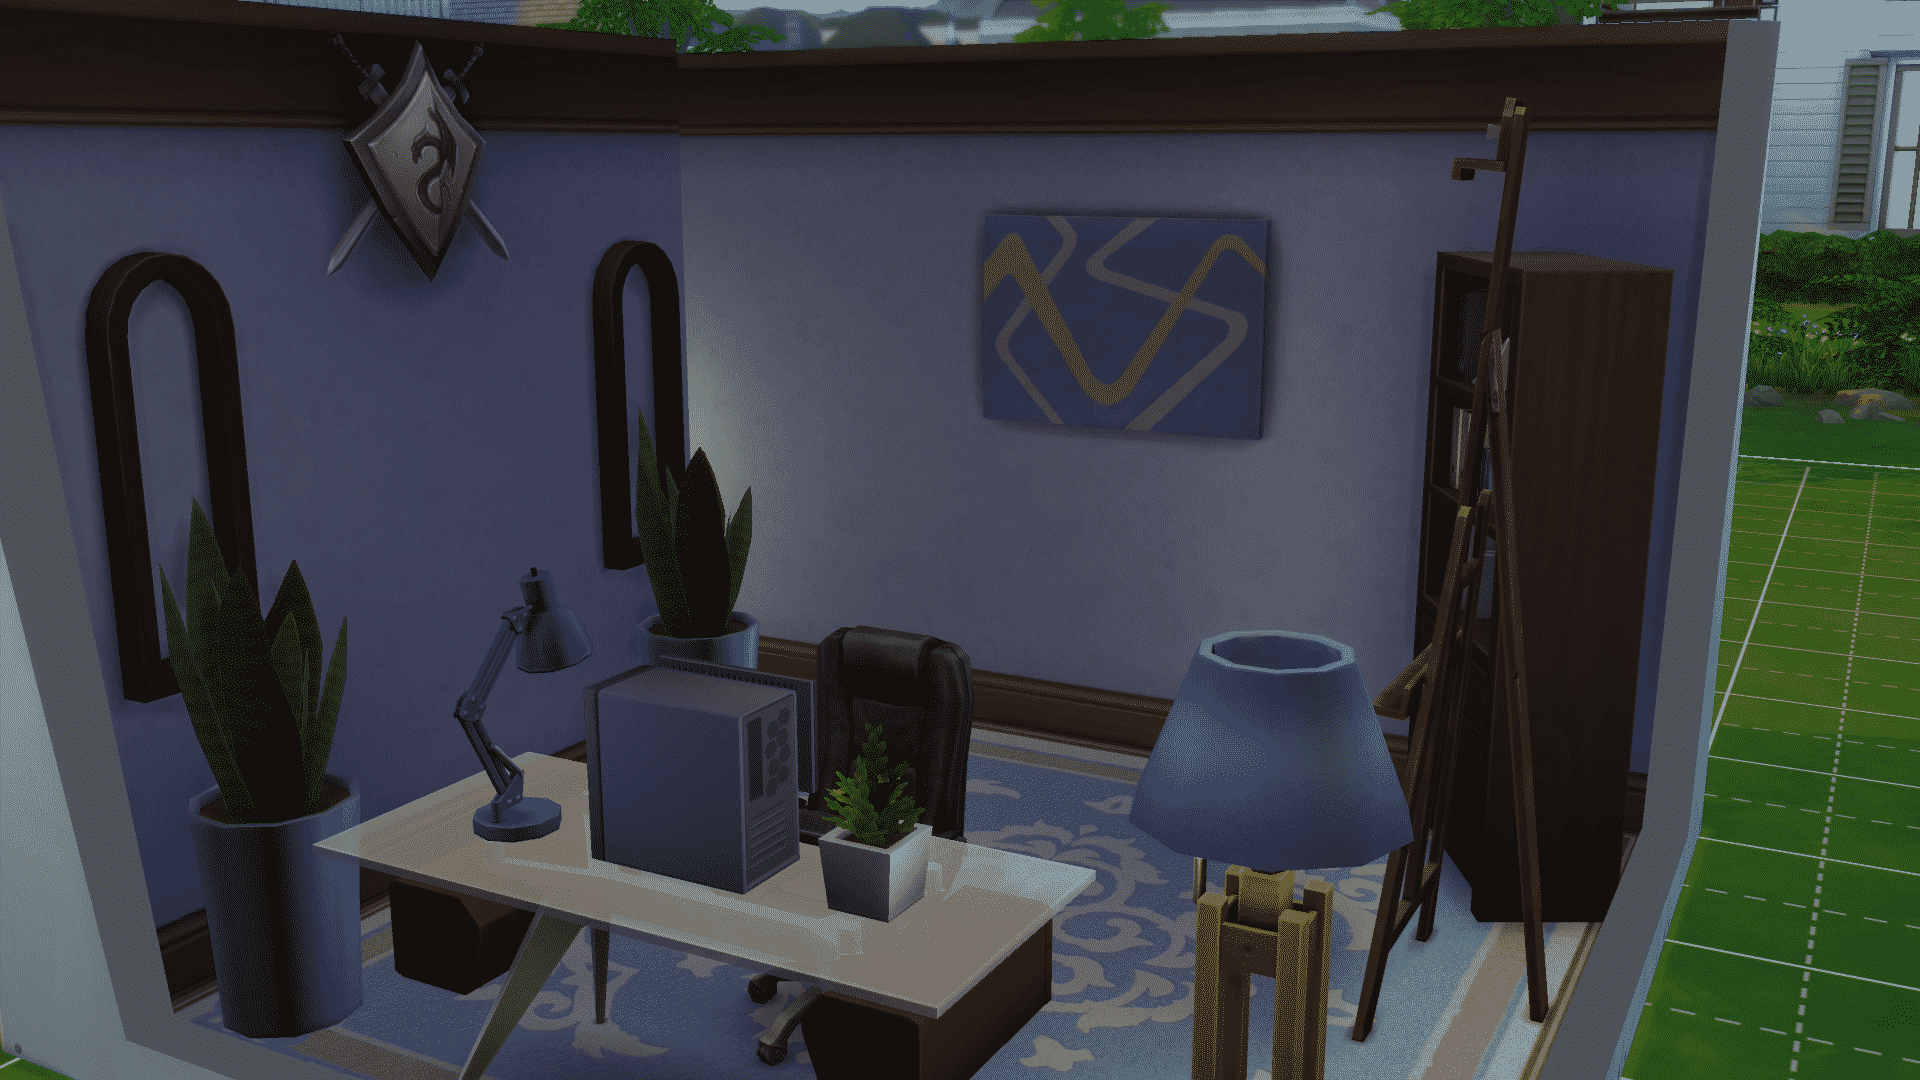 Interior Design Decor The Sims 4 Interior Design Guide